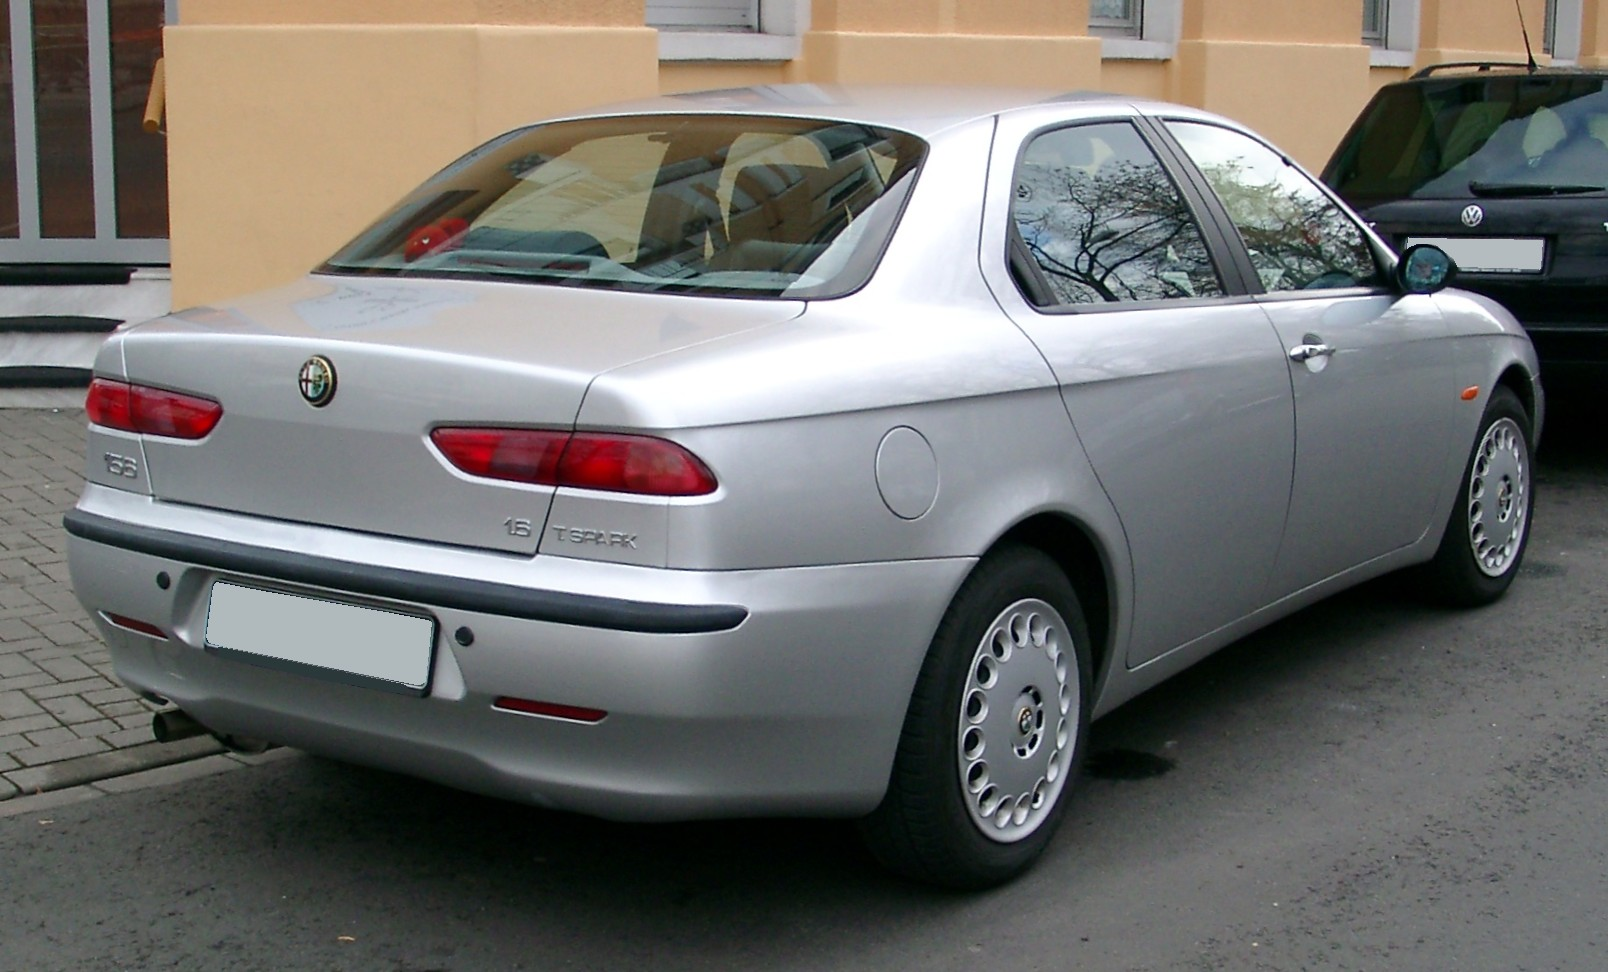 File:Alfa Romeo 156 rear 20080131.jpg